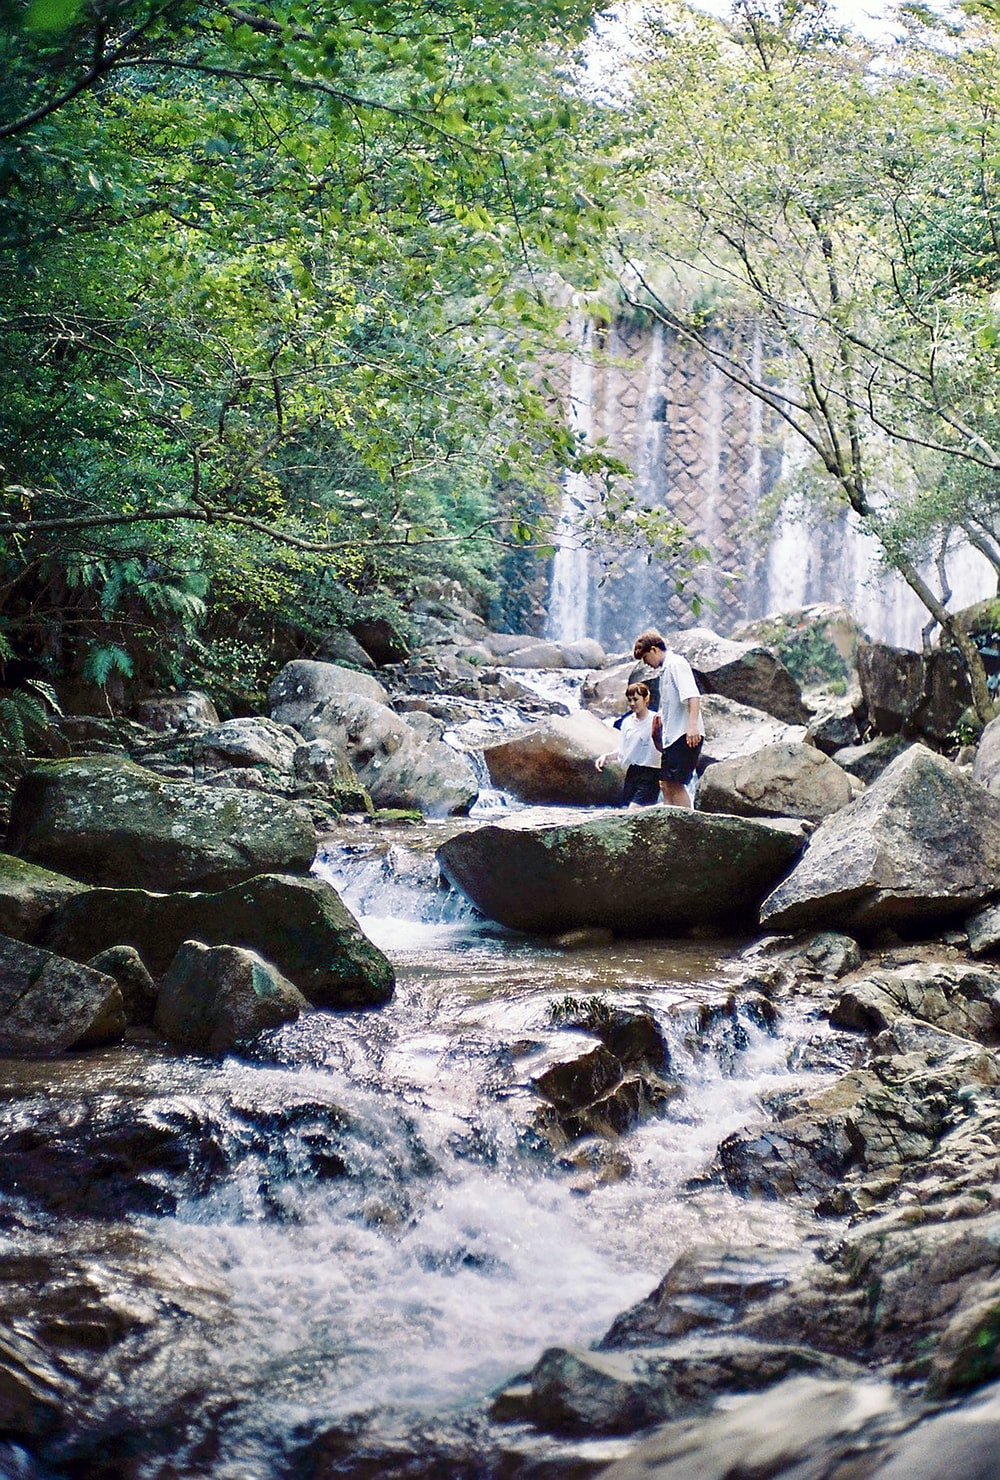 woman in white shirt sitting on rock in river during daytime